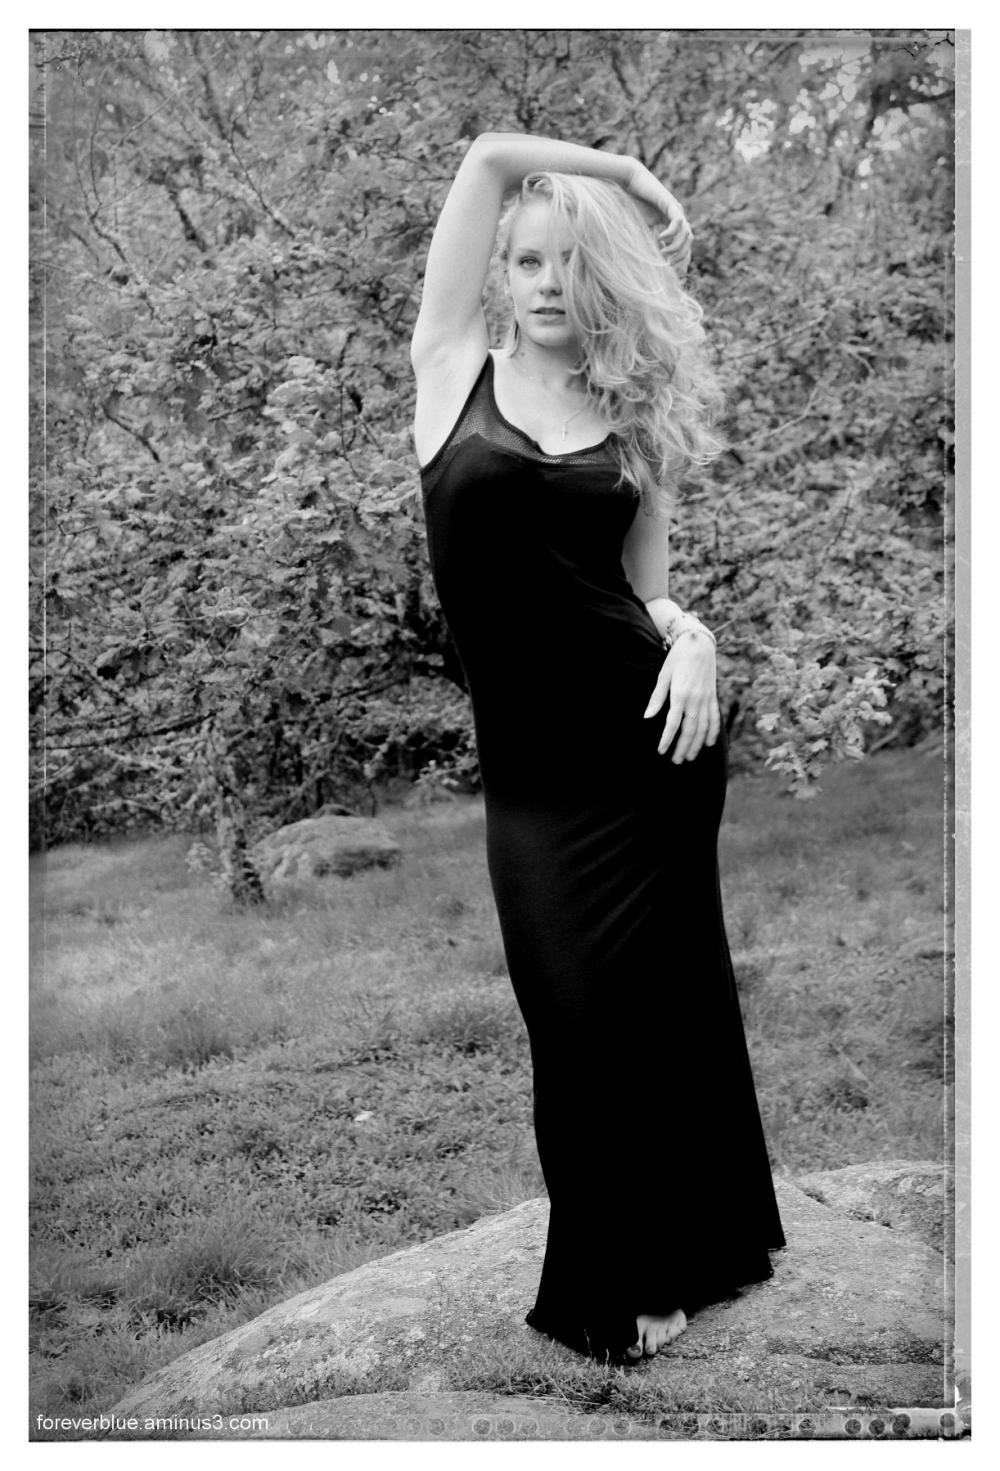 ...THE LADY IN BLACK (1) ...